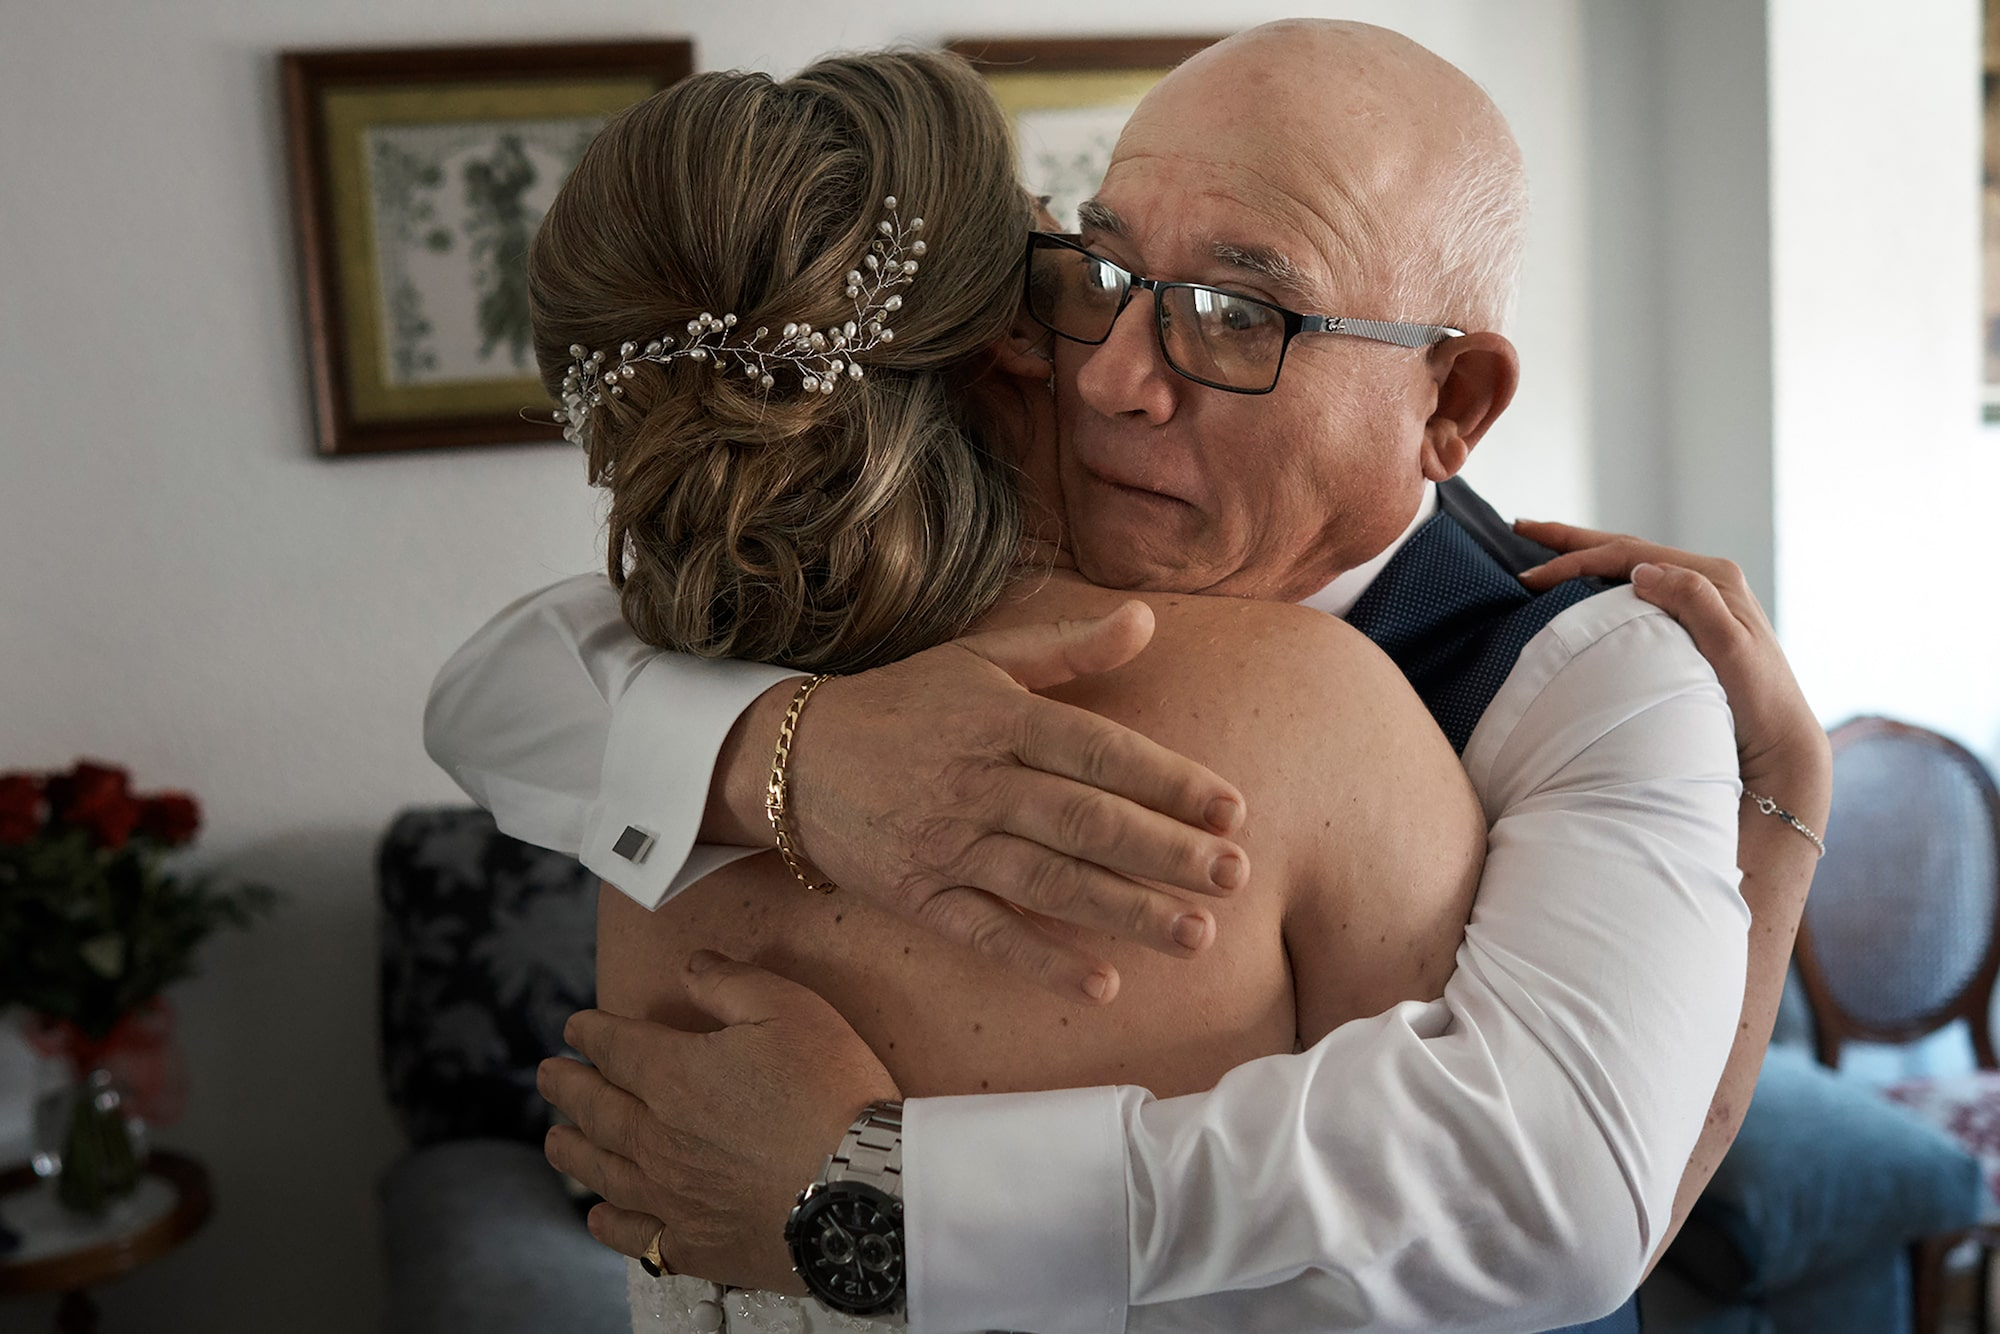 jorge miguel jaime baez sony alpha 7RIII bride and her father embracing before the ceremony